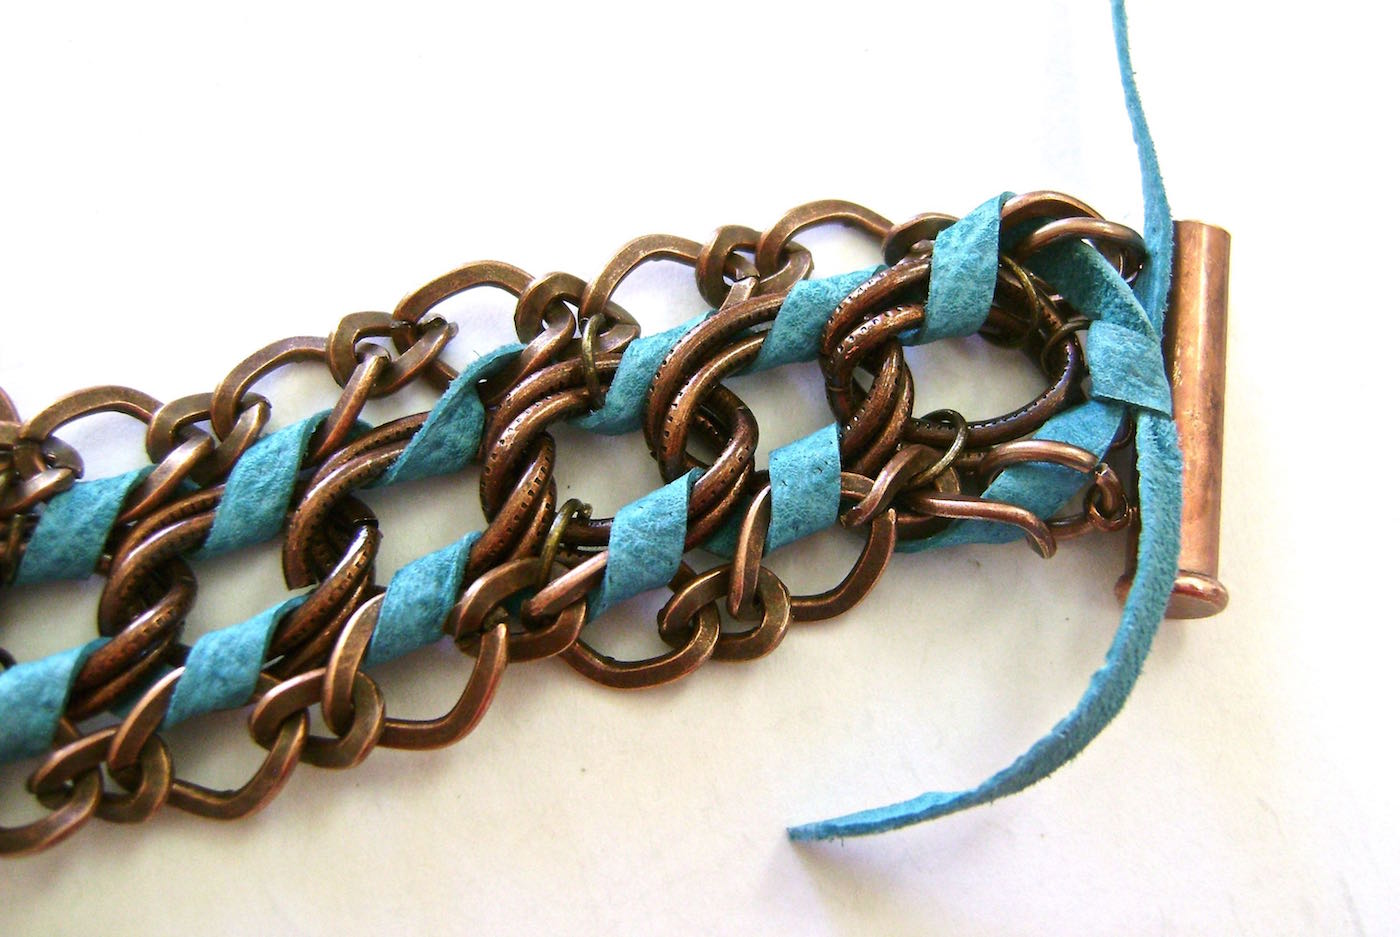 step 6 - When you return to where you started, tie the lace ends together.